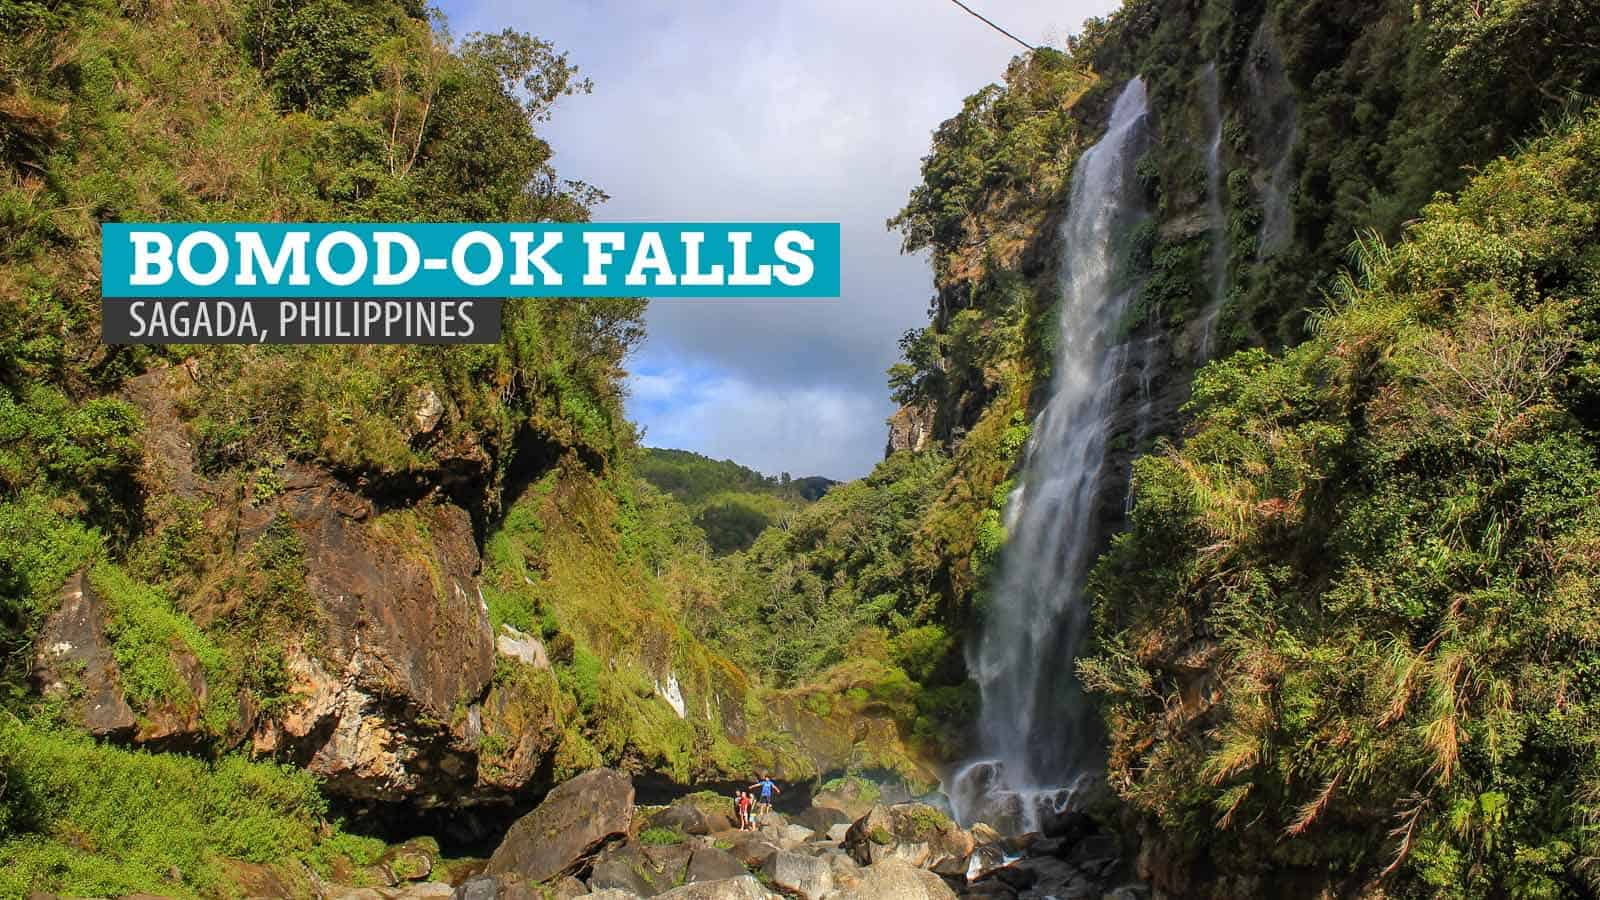 BOMOD-OK FALLS, SAGADA: What to Expect